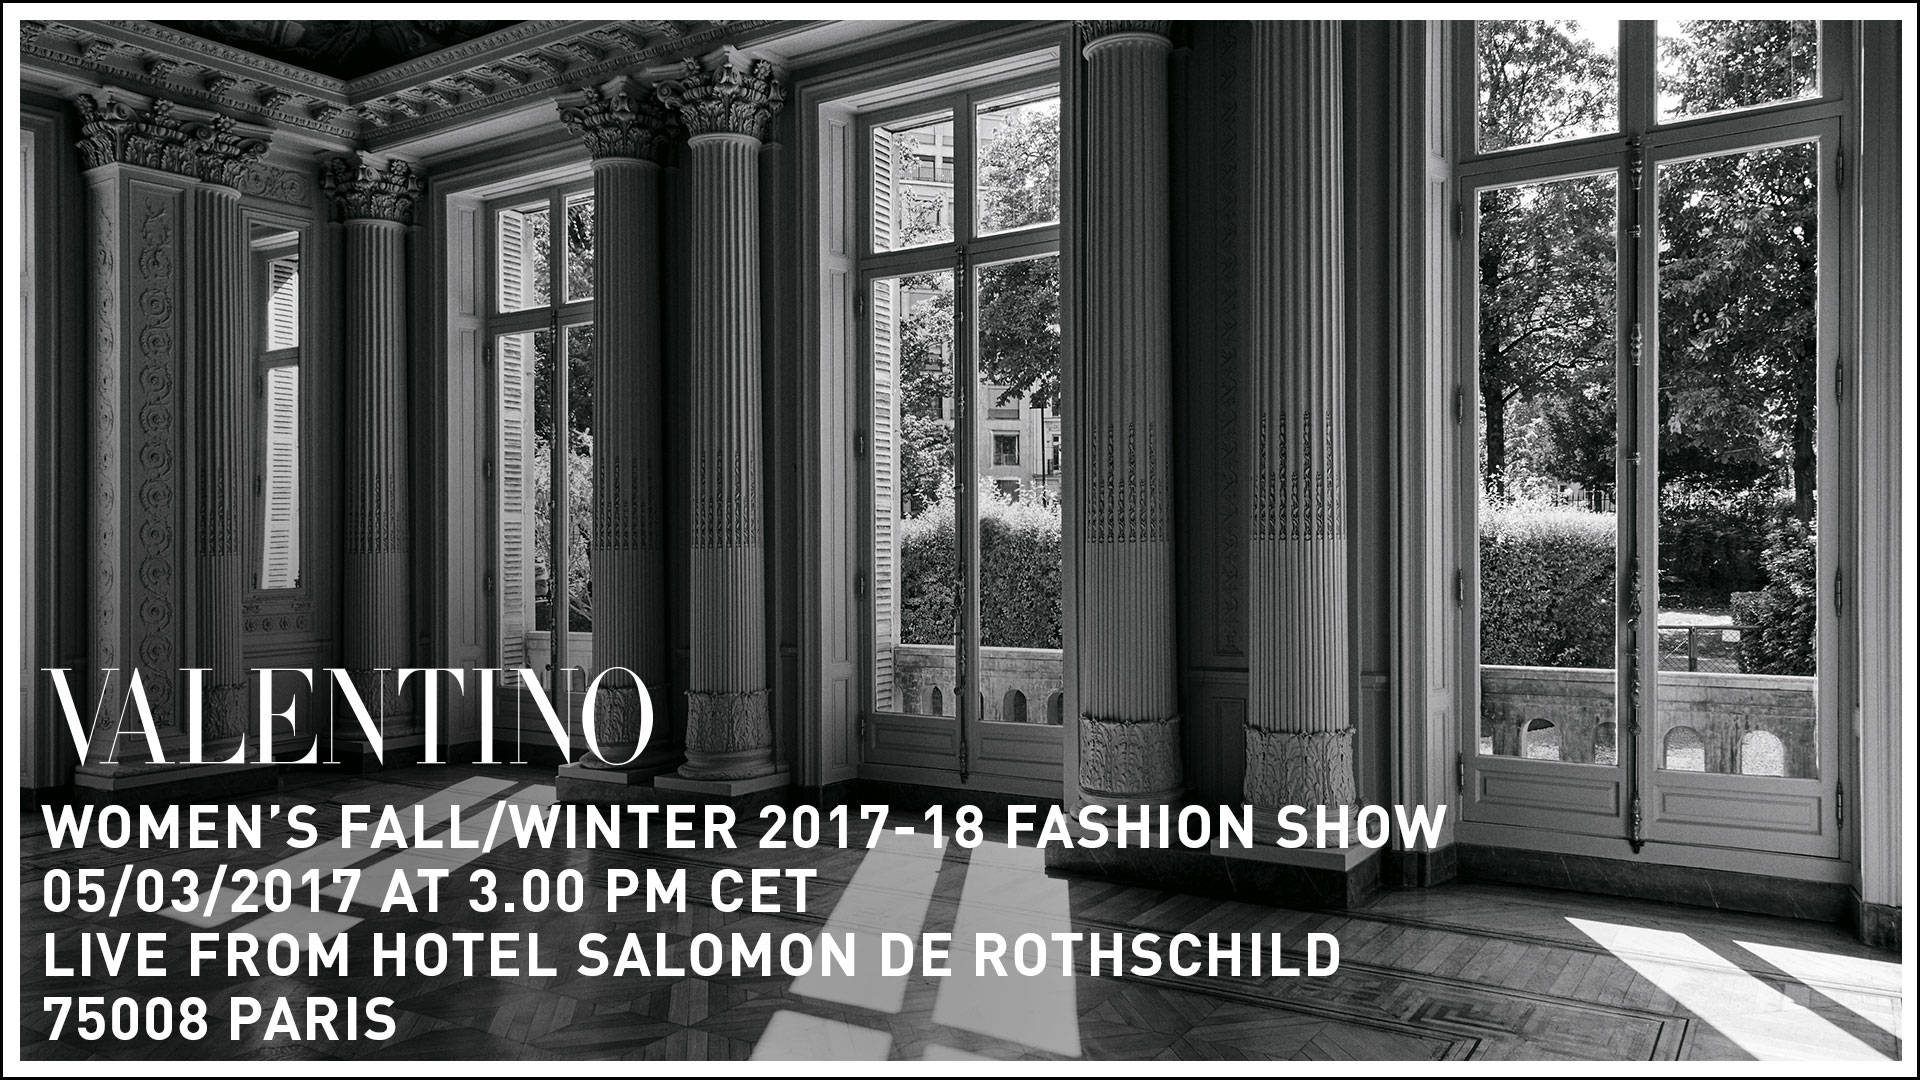 Valentino Fall Winter 2017-18 Women's Fashion Show Live Streaming Paris